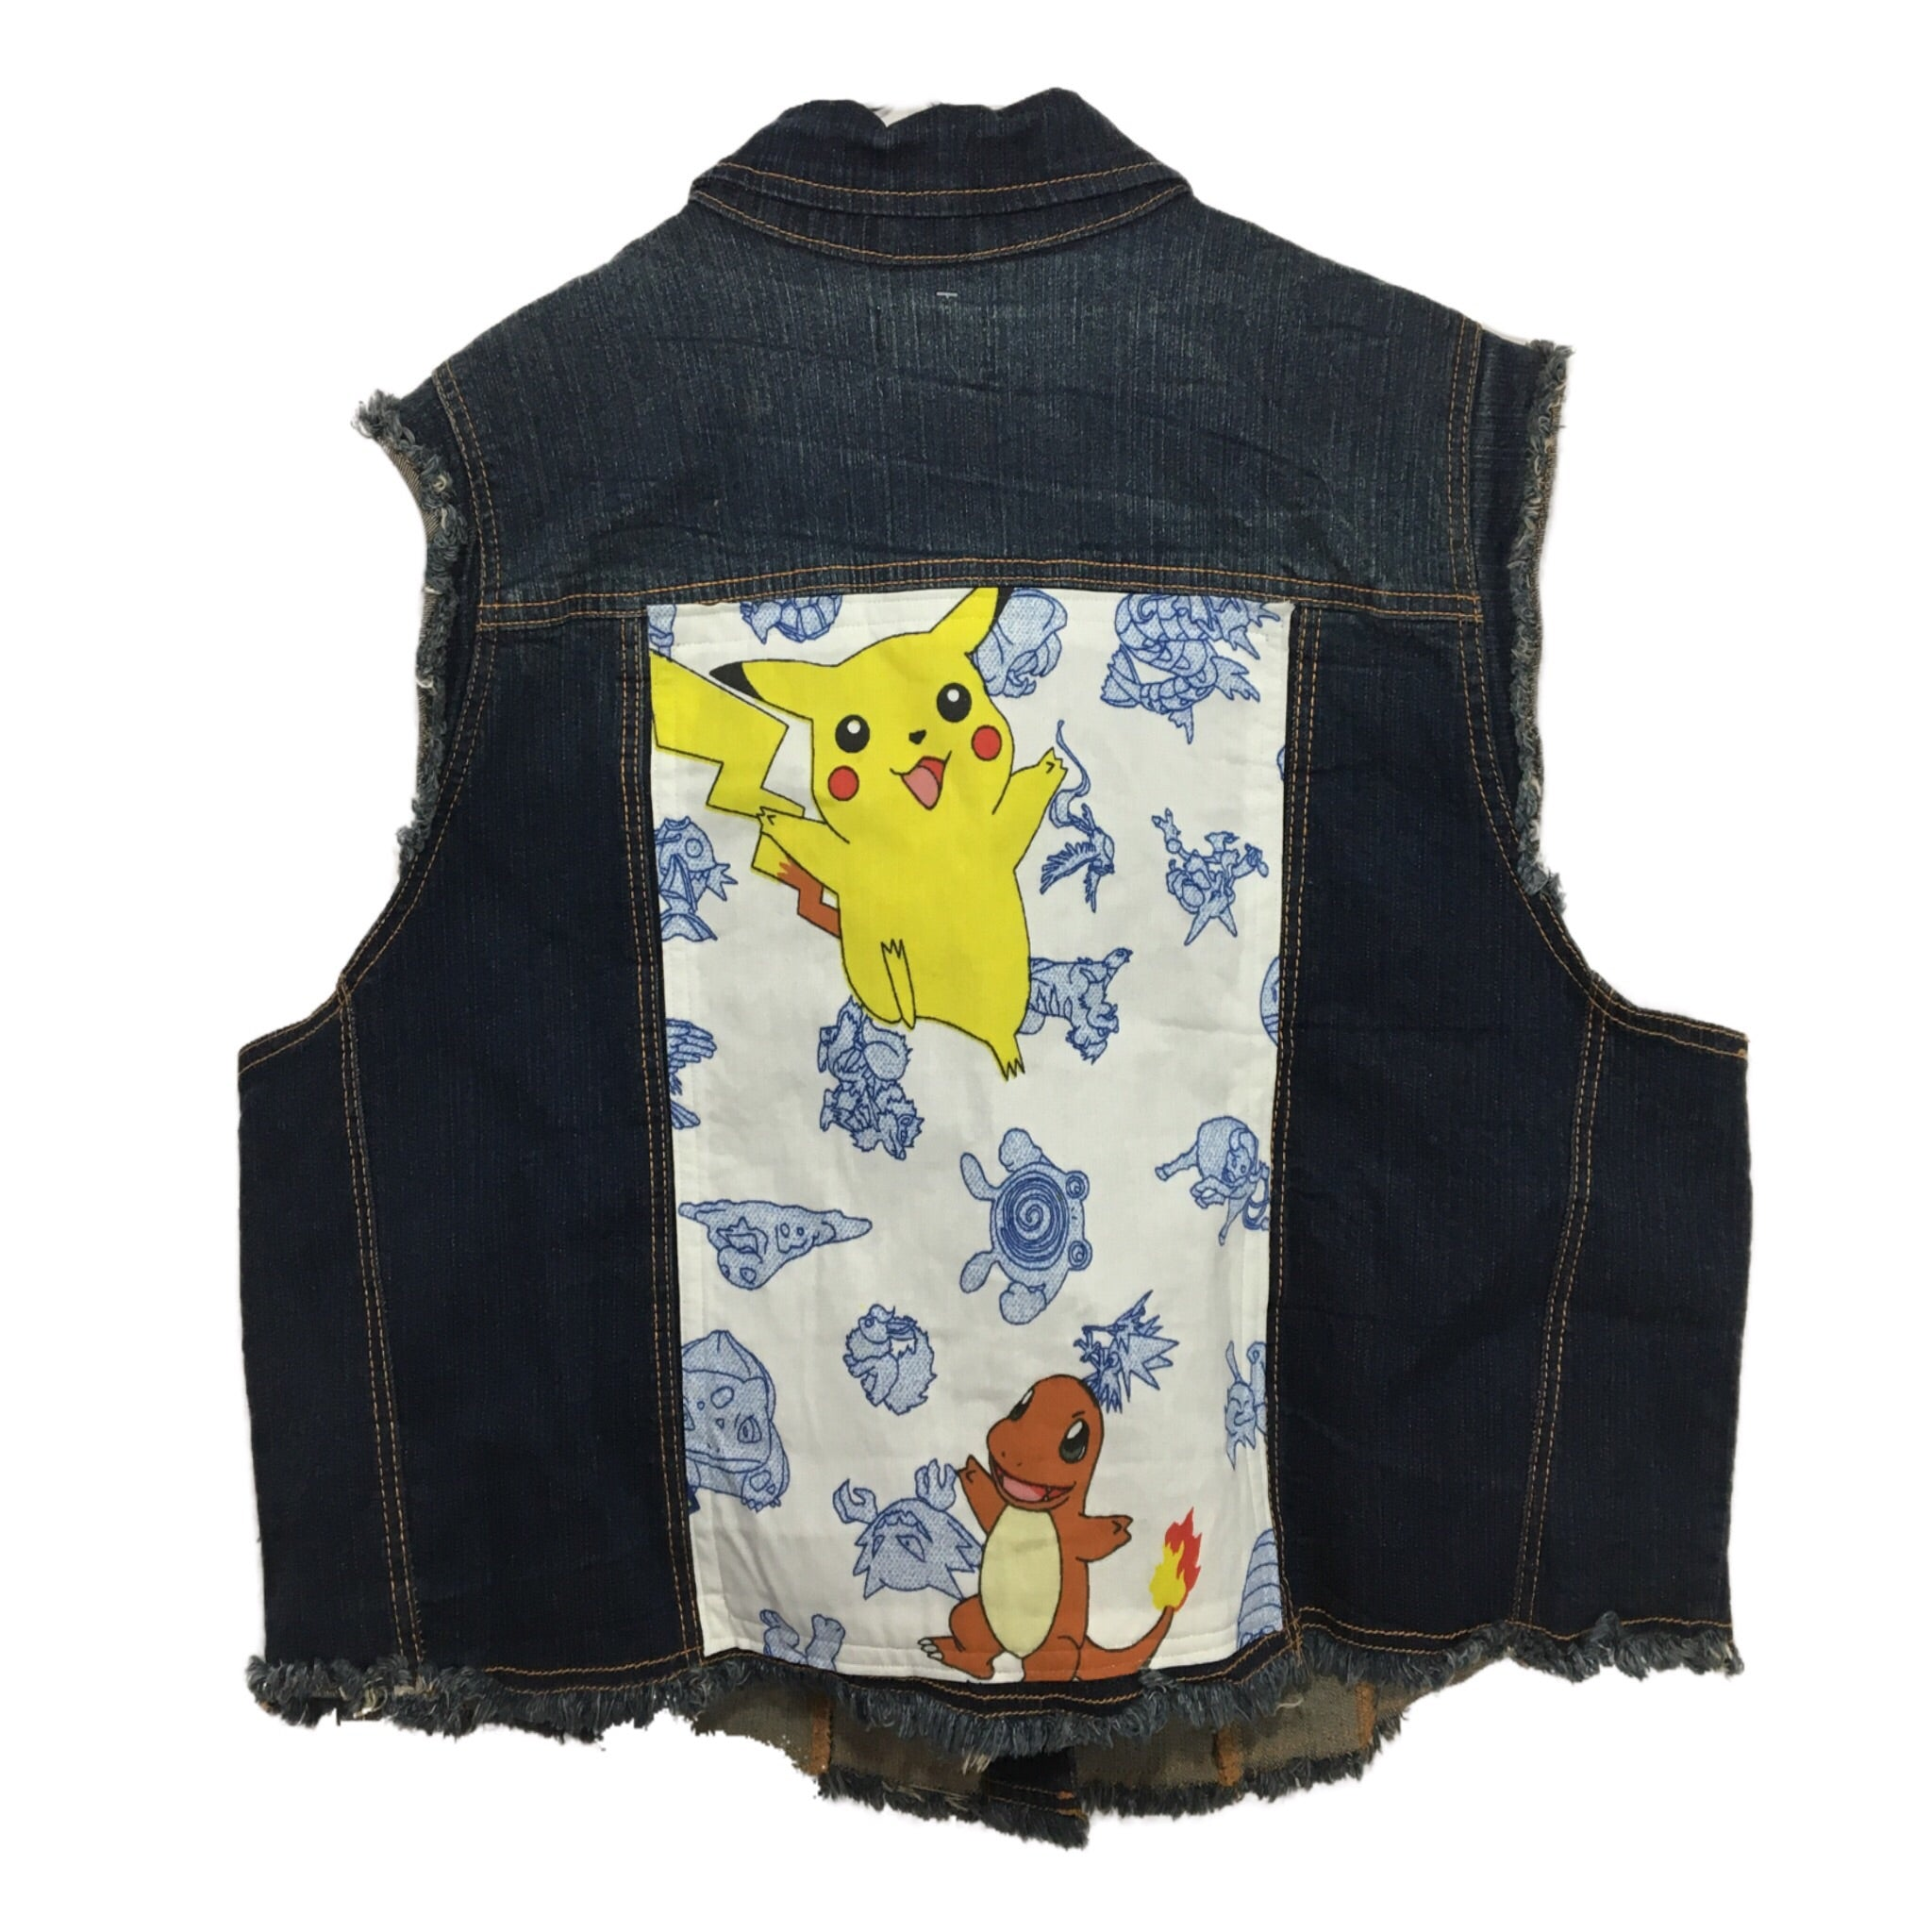 1998 Pokémon Denim Vest 3X